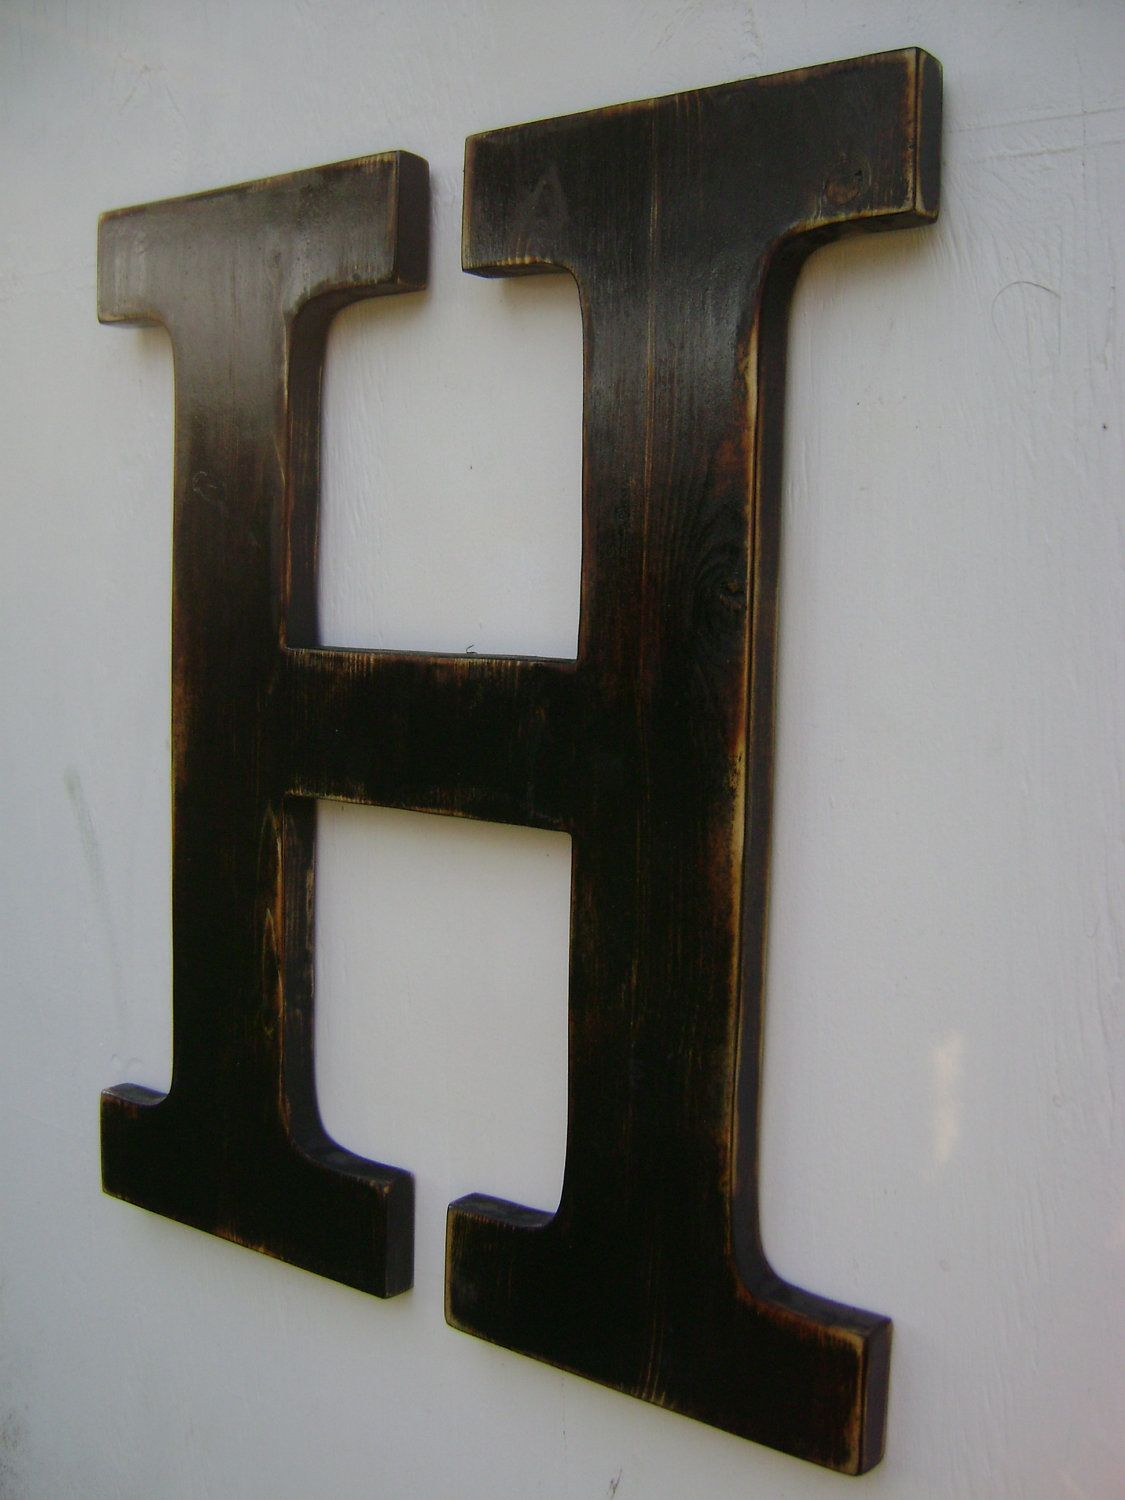 Big Wall Hanging Wooden Letter H Nursery Decor Painted Black 52 00 Via Etsy Hanging Wooden Letters Wooden Letters Wall Hanging